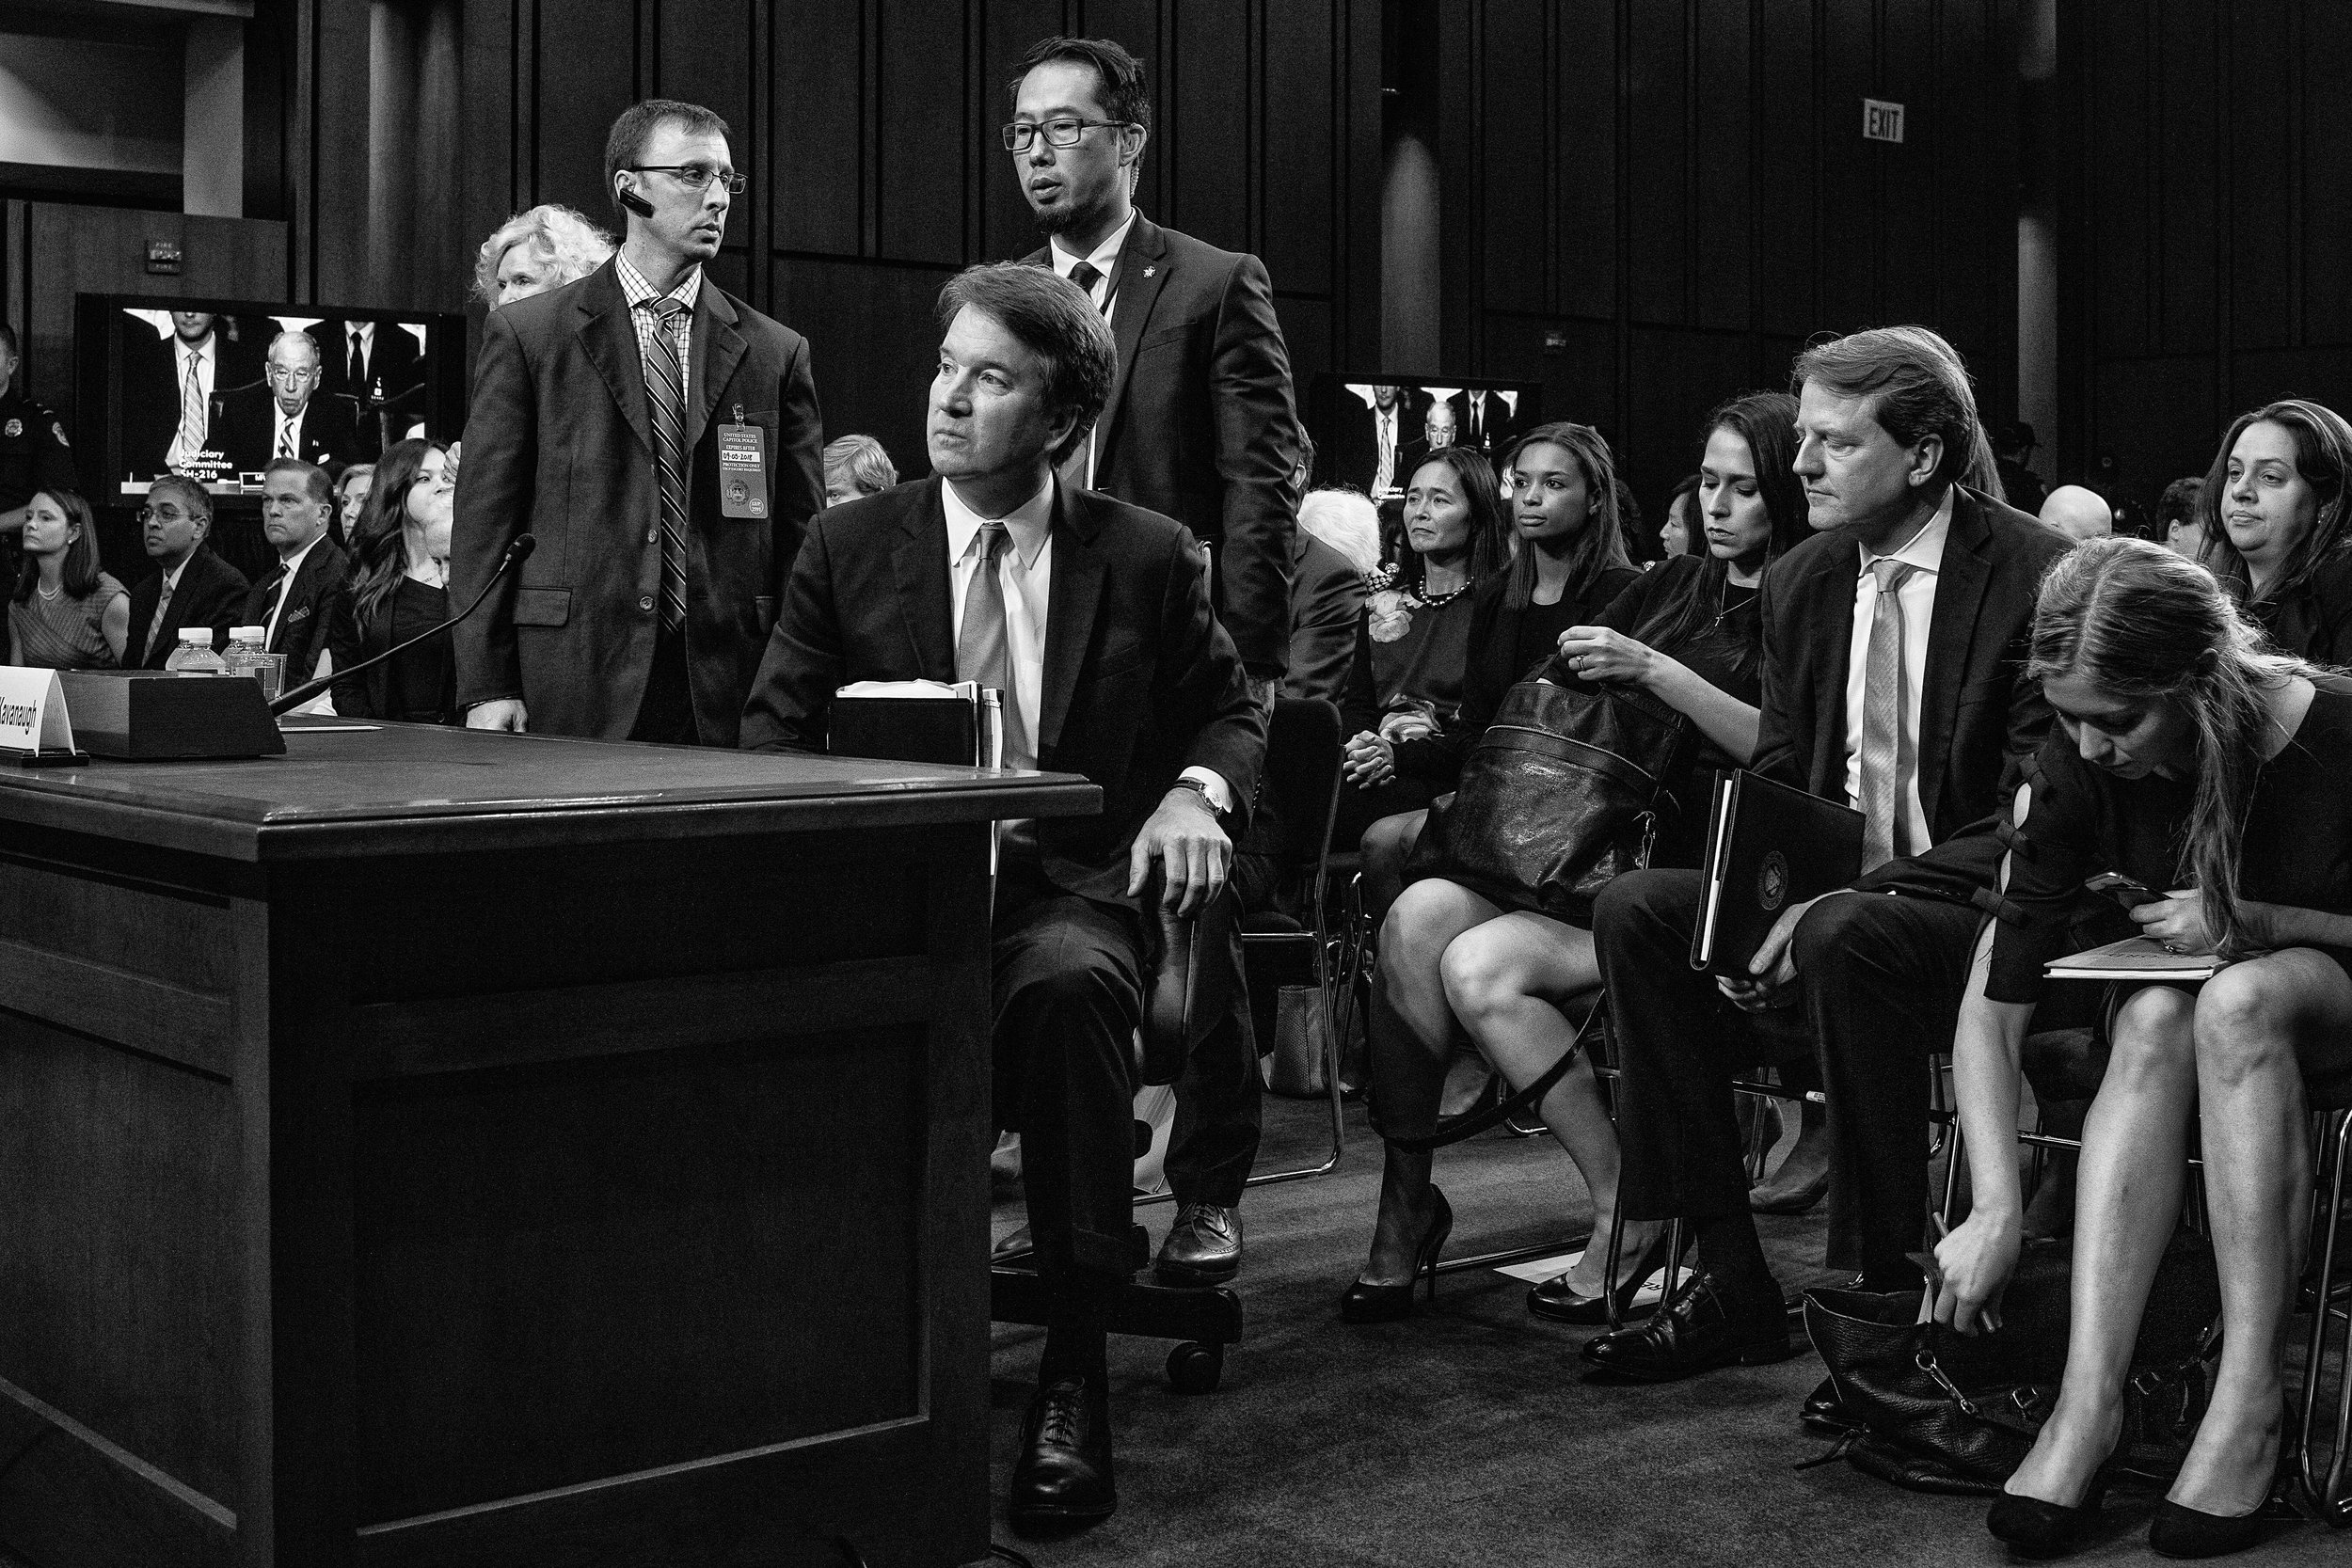 Day 594: US Supreme Court associate justice nominee Brett Kavanaugh speaks during a Senate Judiciary Committee confirmation hearing in Washington, DC, on September 5, 2018.